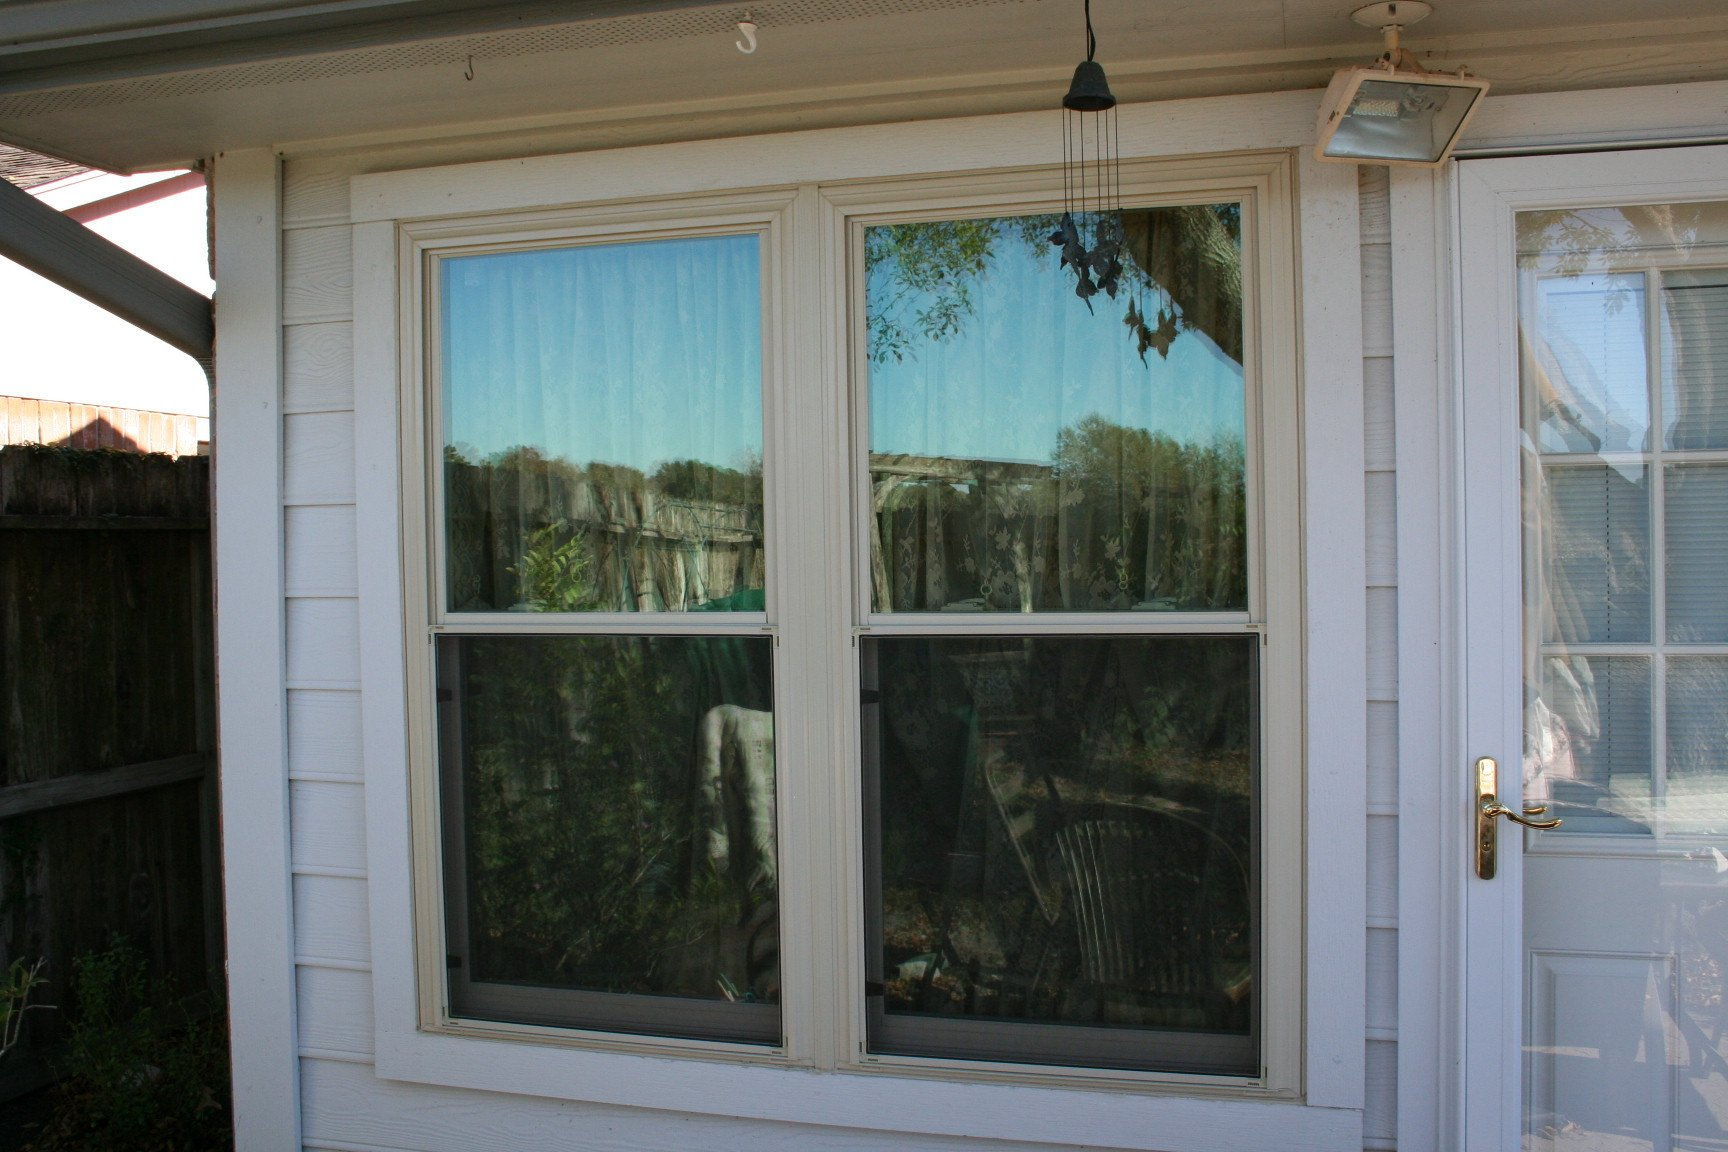 A j e m home design remodeling tomball tx window for House window replacement